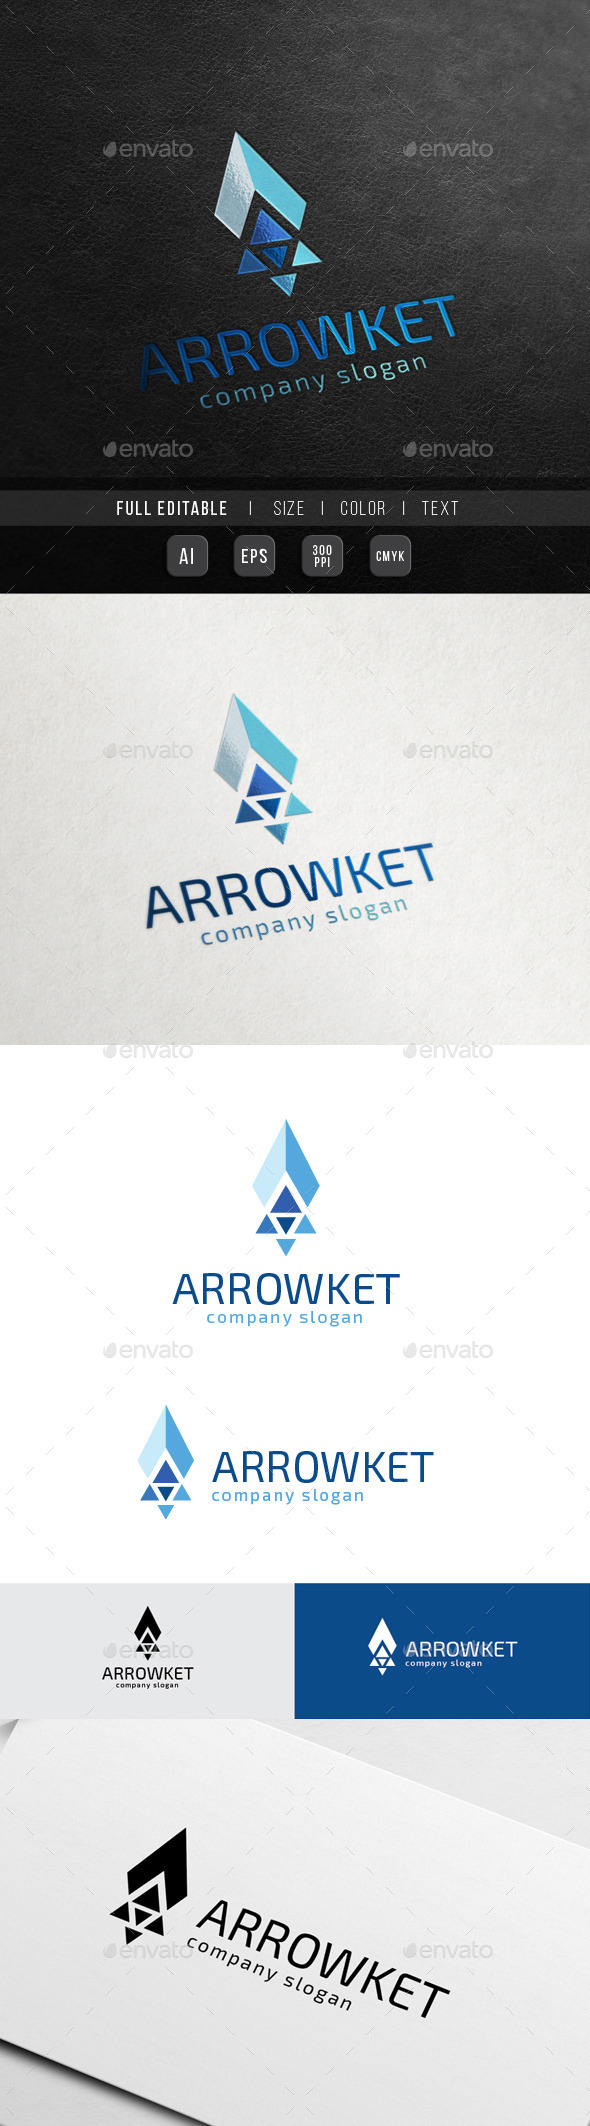 Arrow Rocket Launch - Startup Growth - Symbols Logo Templates